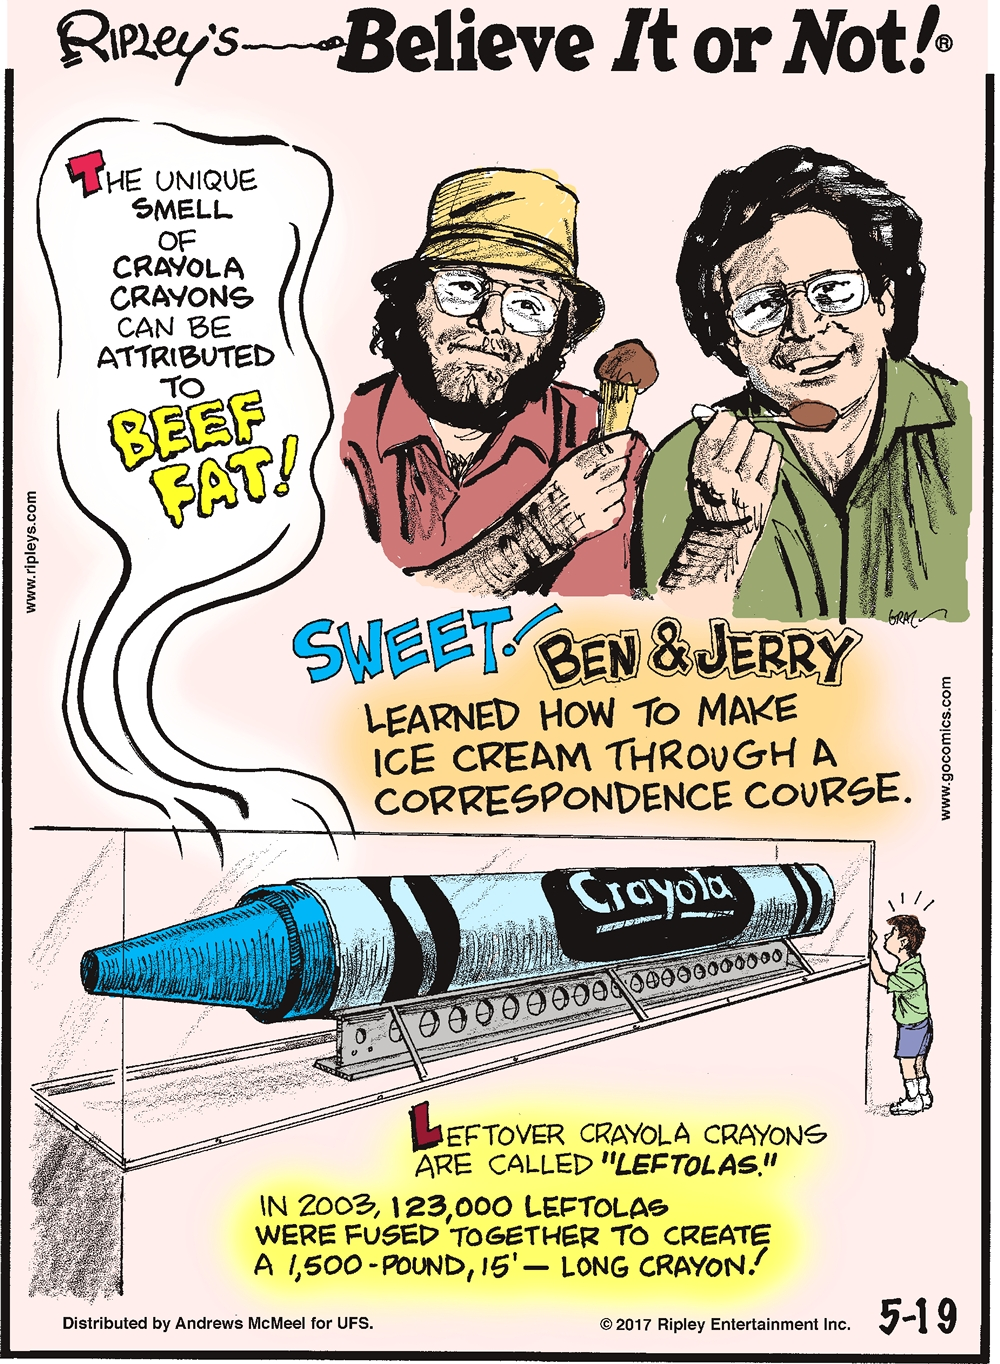 """The unique smell of Crayola Crayons can be attributed to beef fat!-------------------- Sweet! Ben & Jerry learned how to make ice cream through a correspondence course.-------------------- Leftover Crayola Crayons are called """"leftolas."""" In 2003, 123,000 leftolas were fused together to create a 1,500-pound, 15' - long crayon!"""